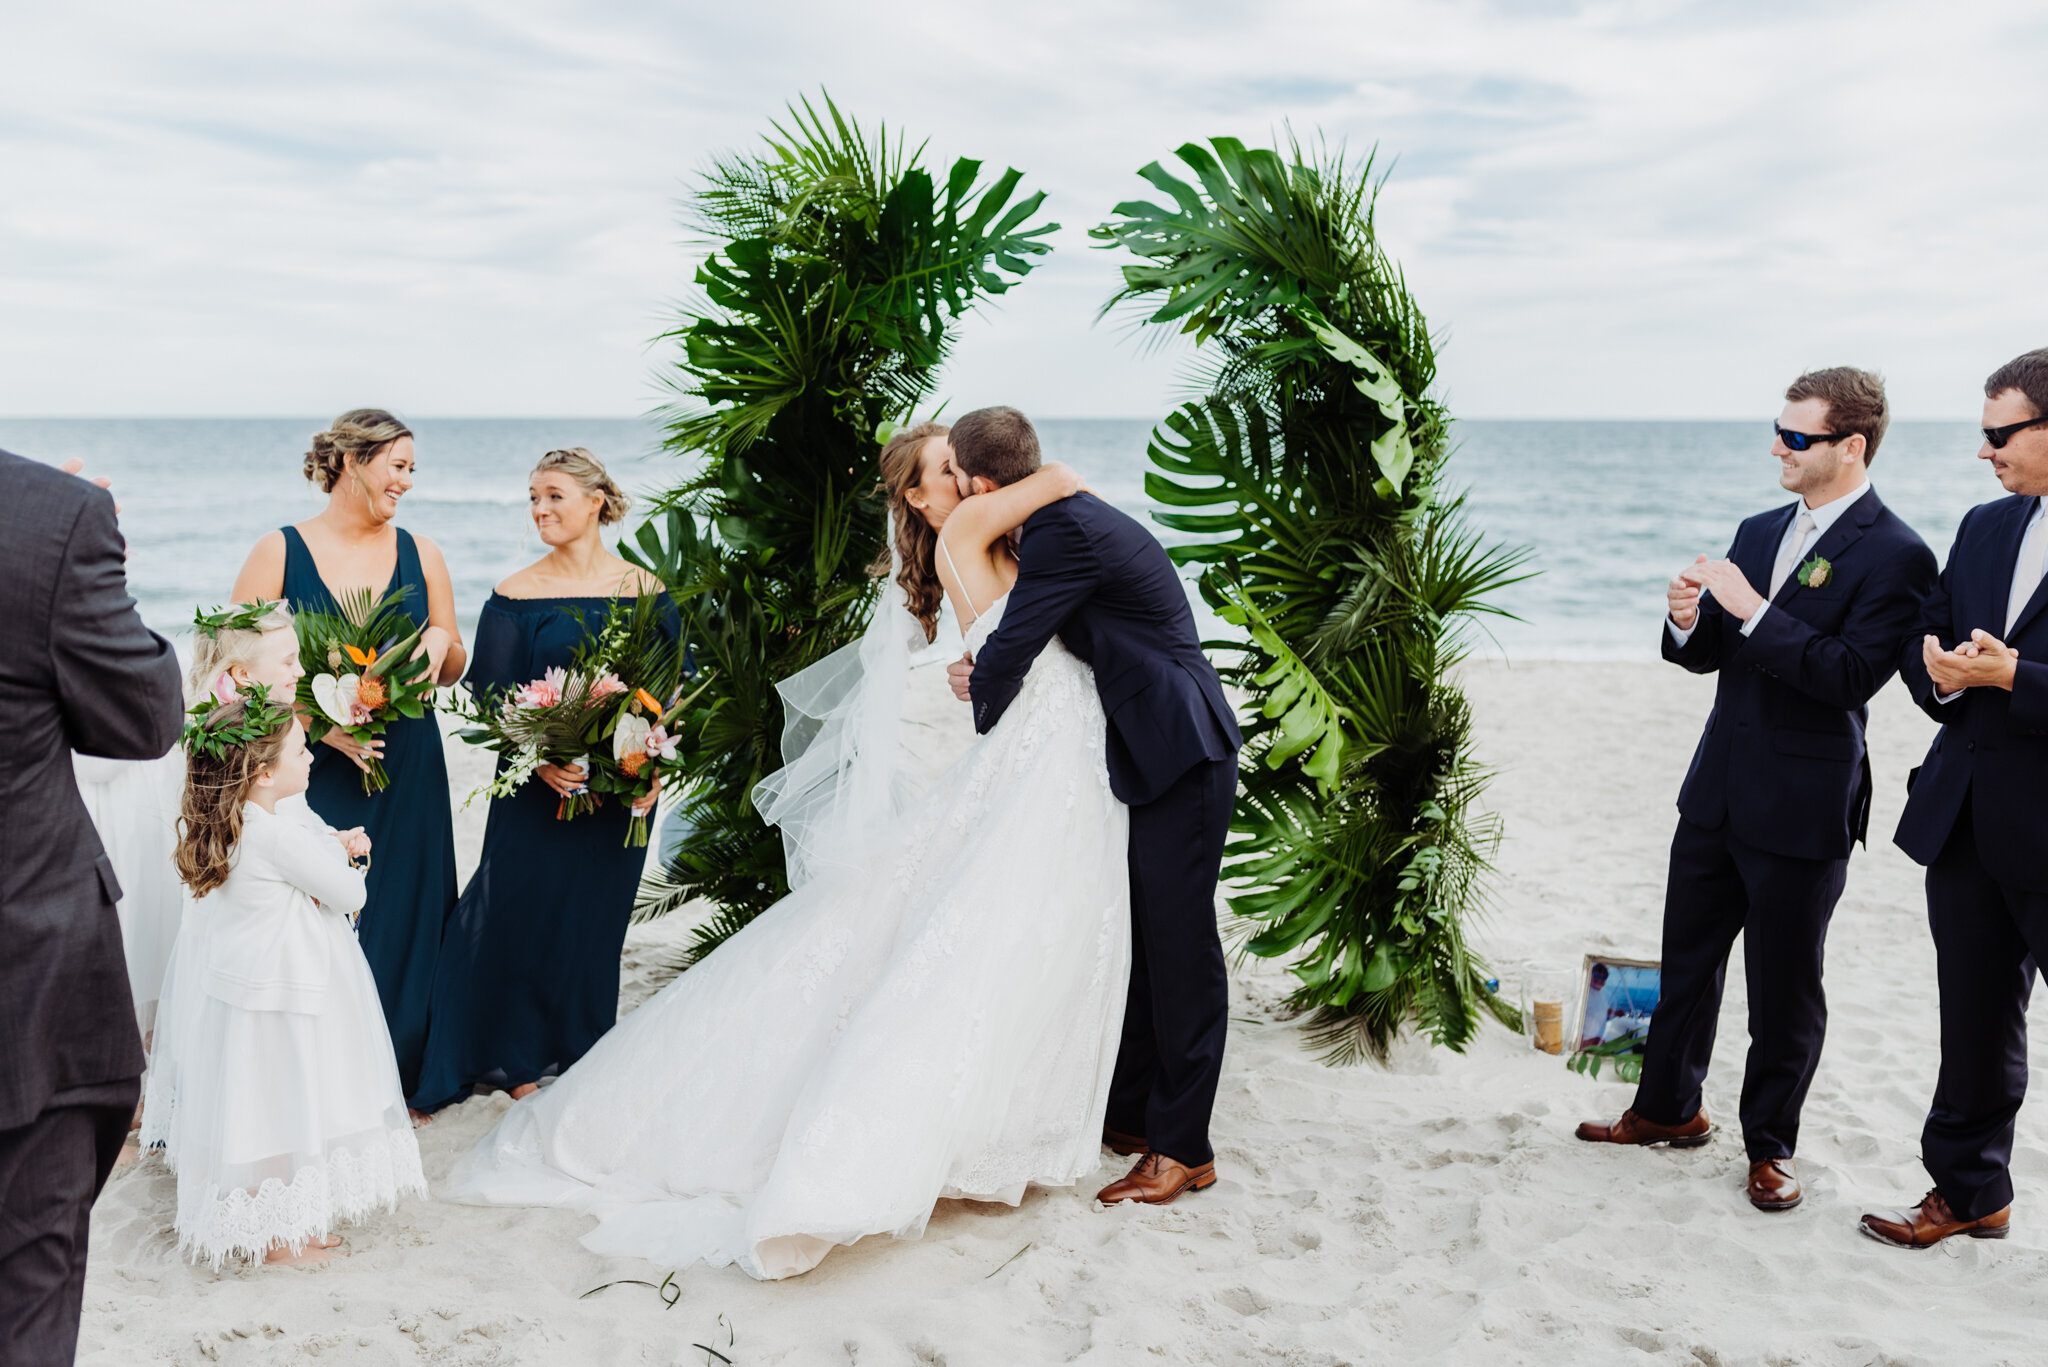 Beach+Wedding+Crim+Barefoot+Beach+Bride